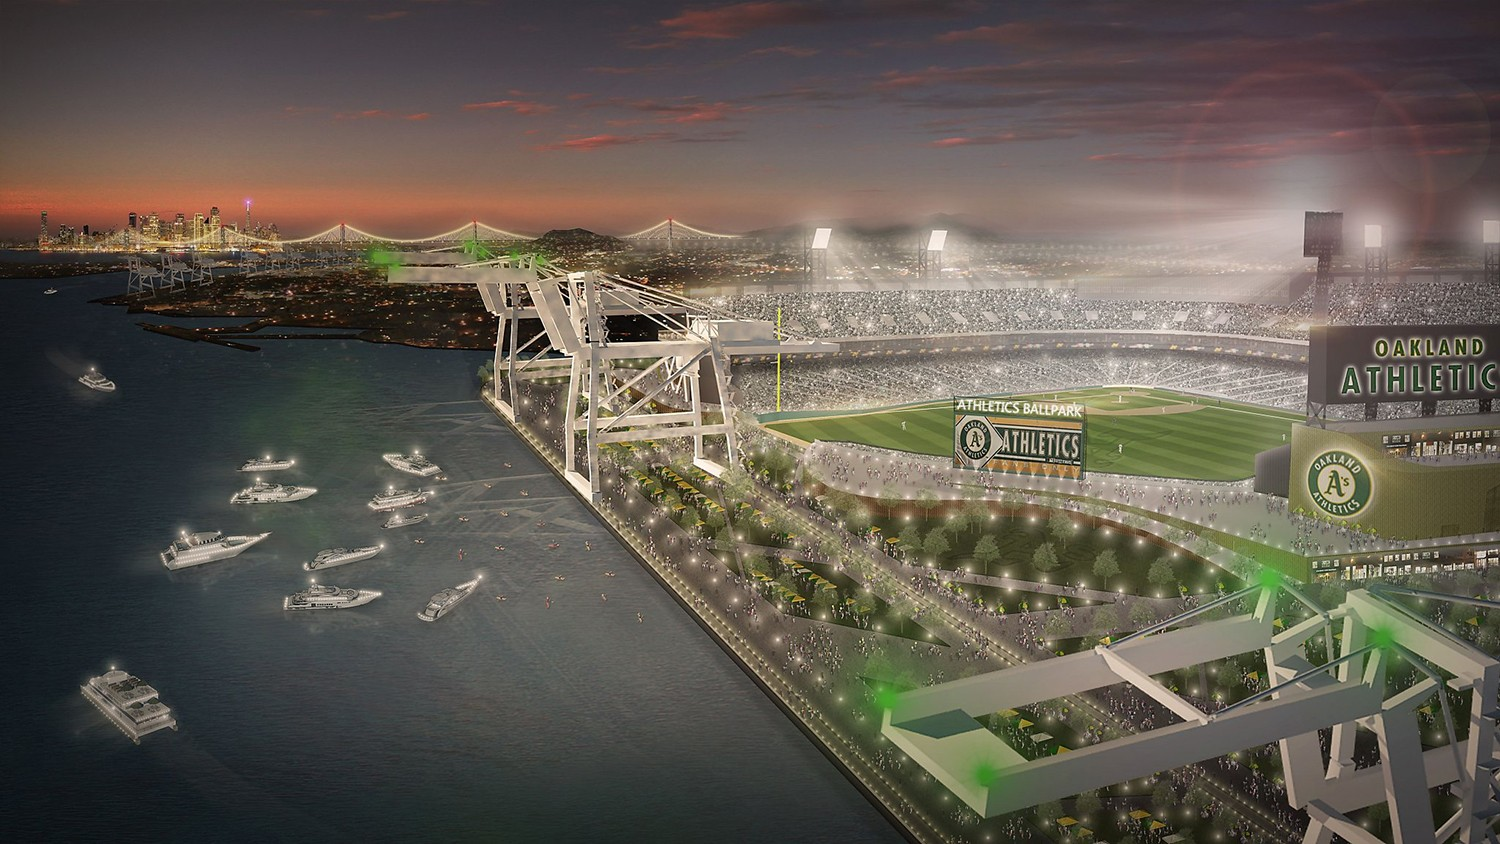 A's Struggle to Find New Home Base for Ballpark | Post News Group